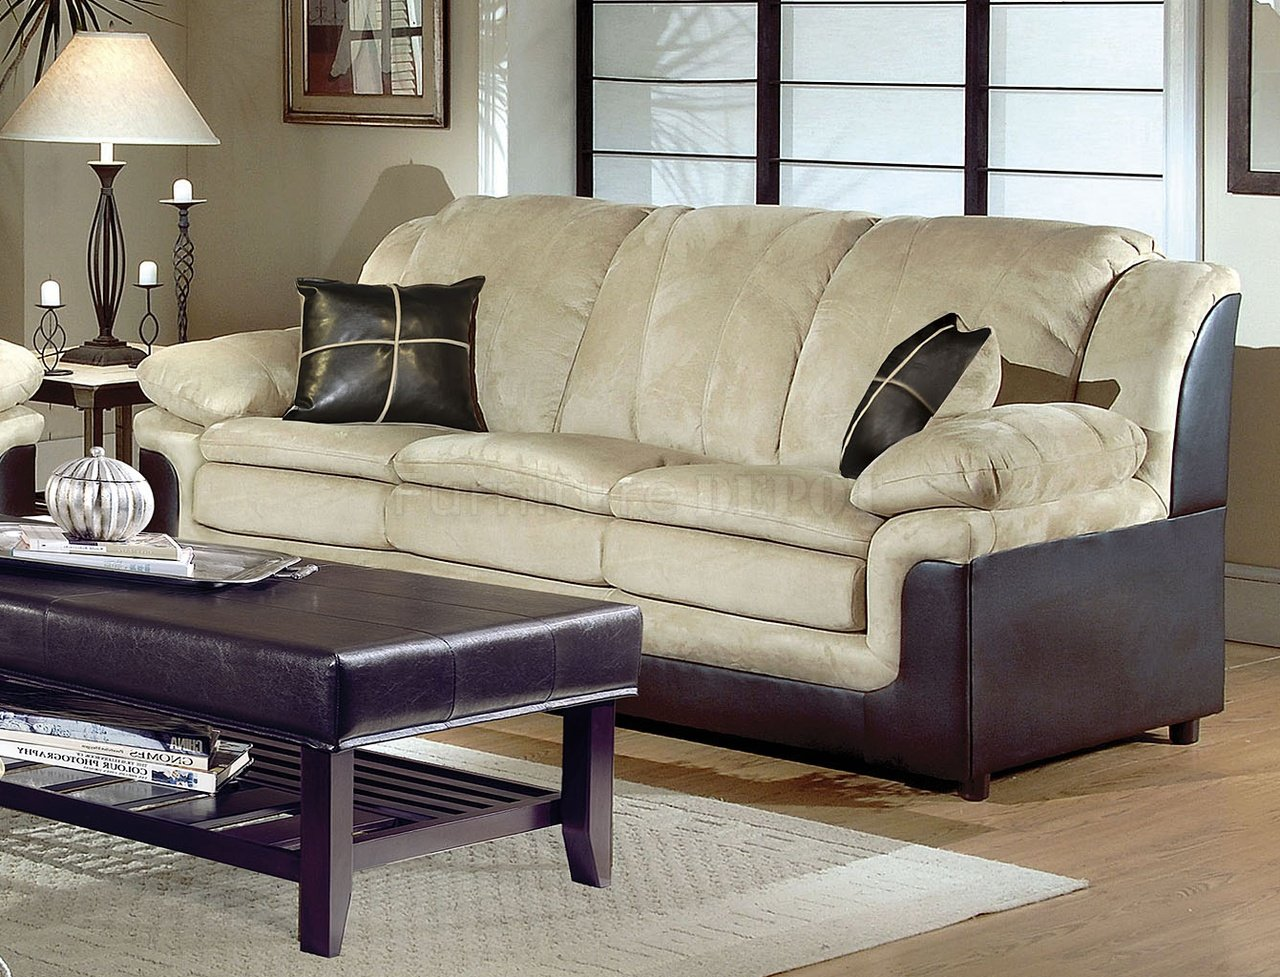 Genuine Leather Sofa Dhaka Bangladesh